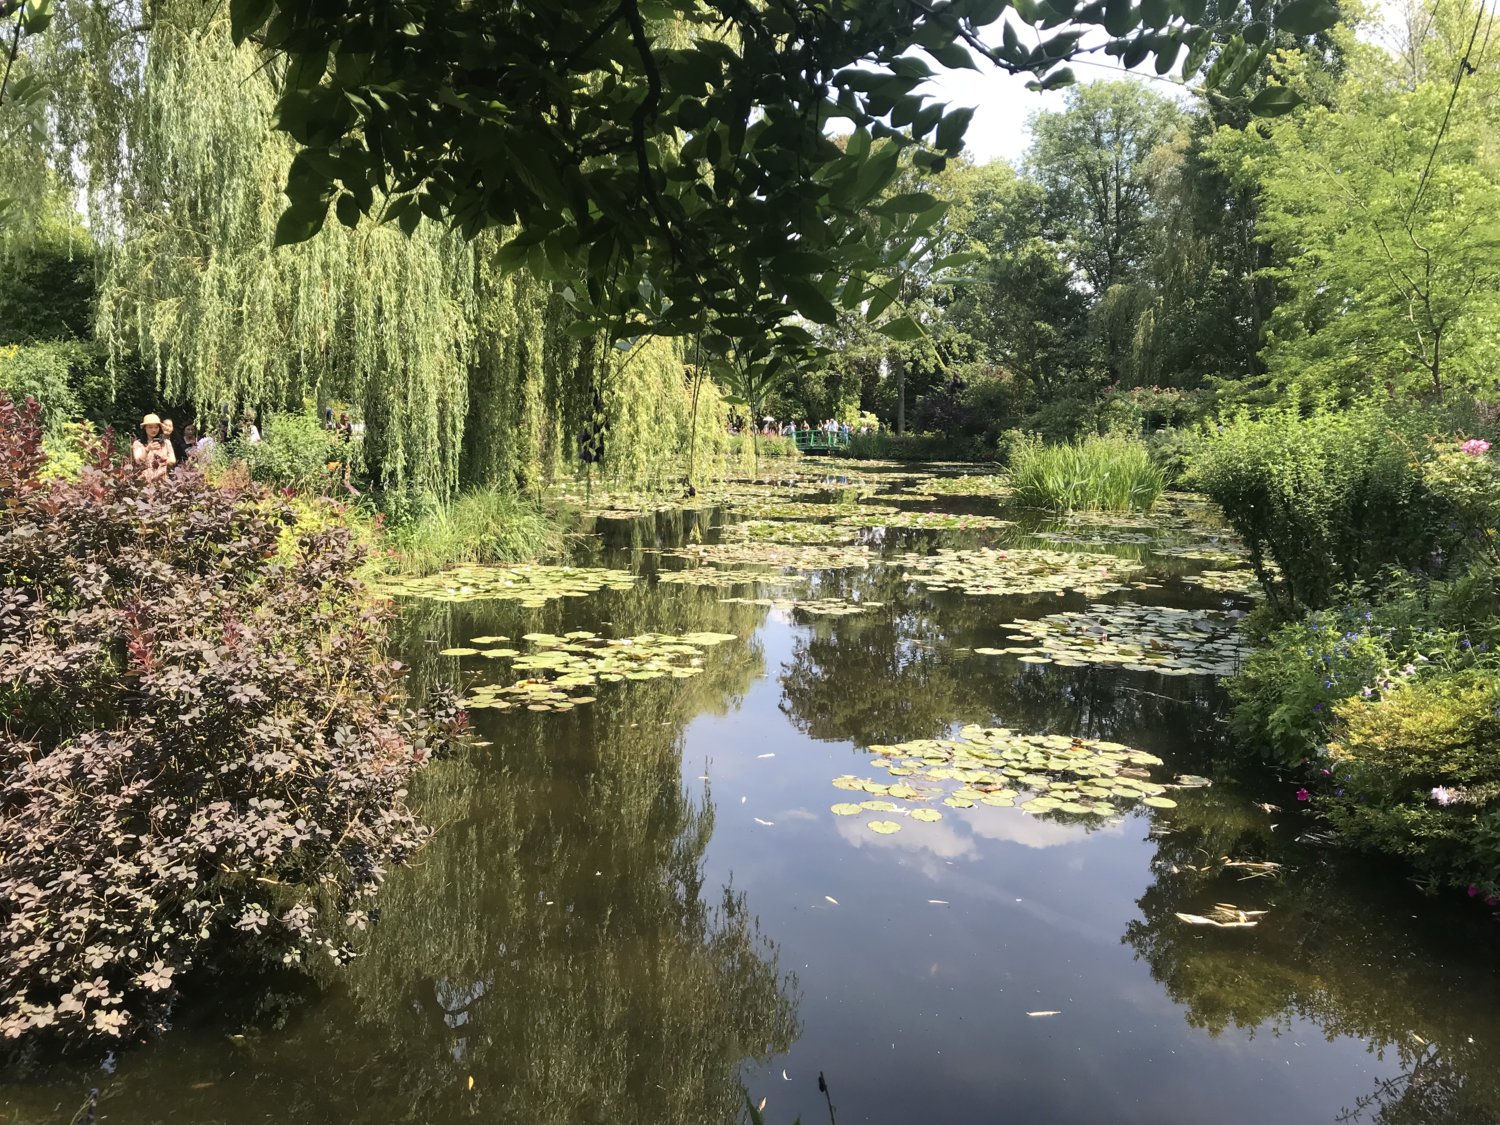 Monet's water lilies in Giverny, France. © AMV, July 2018.